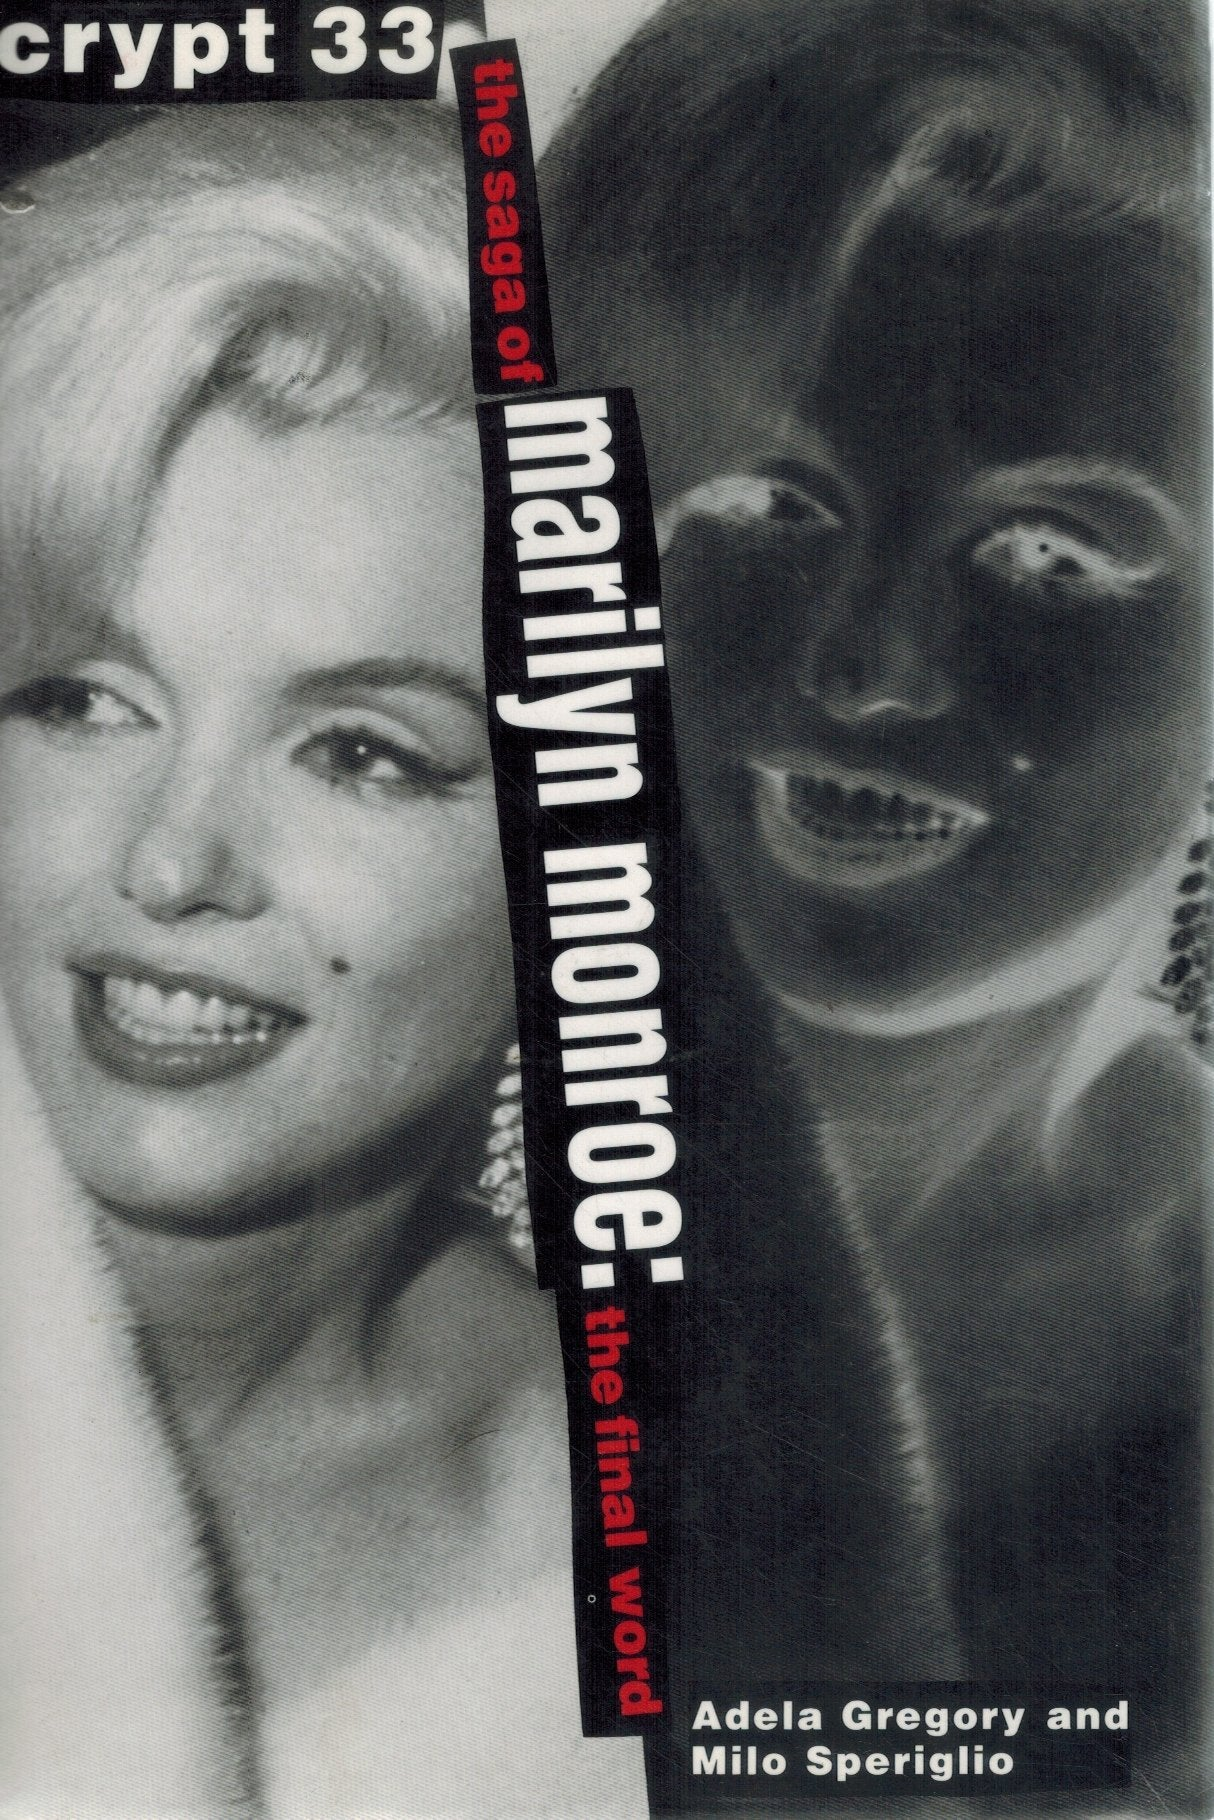 CRYPT 33 The Saga of Marilyn Monroe - the Final Word  by Gregory, Adela & Milo Speriglio